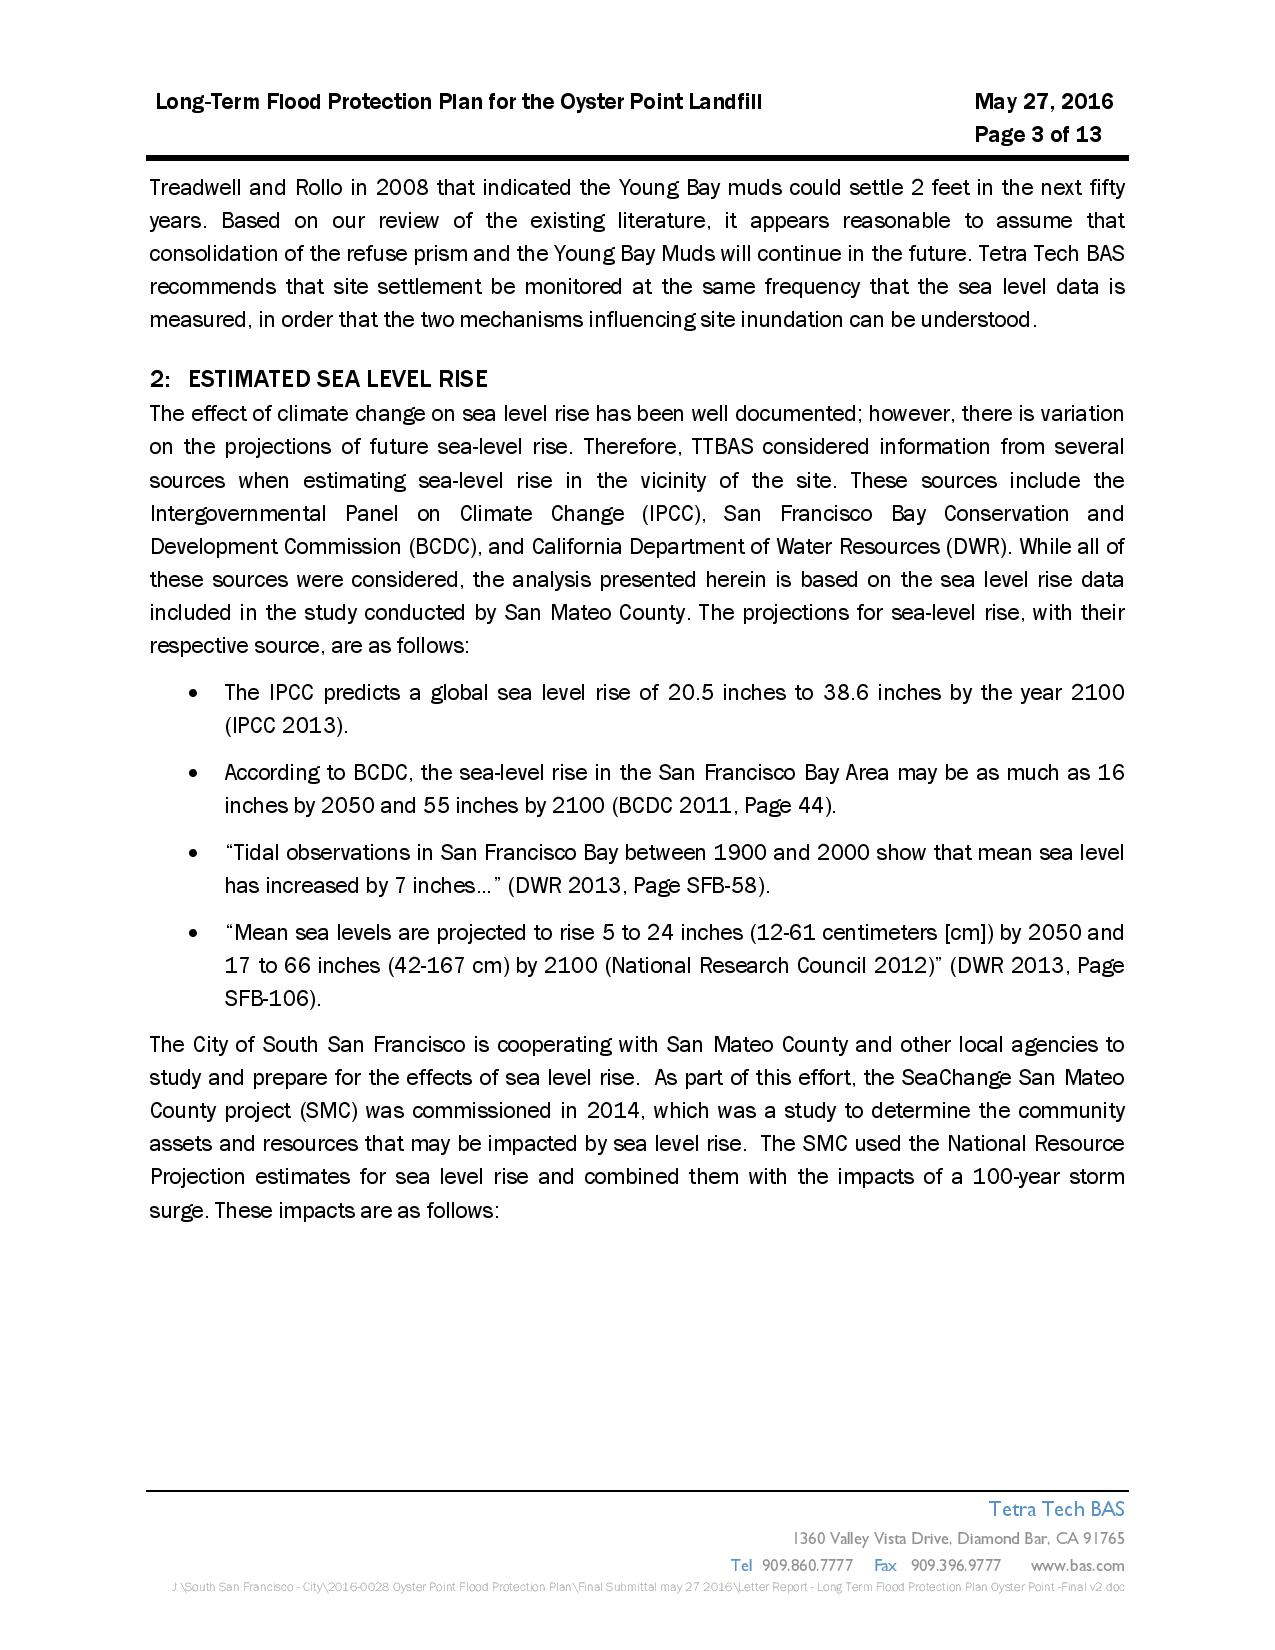 City of SSF Oyster Pt. Landfill Long-Term Flood Protection Letter & Plan-2-page-005